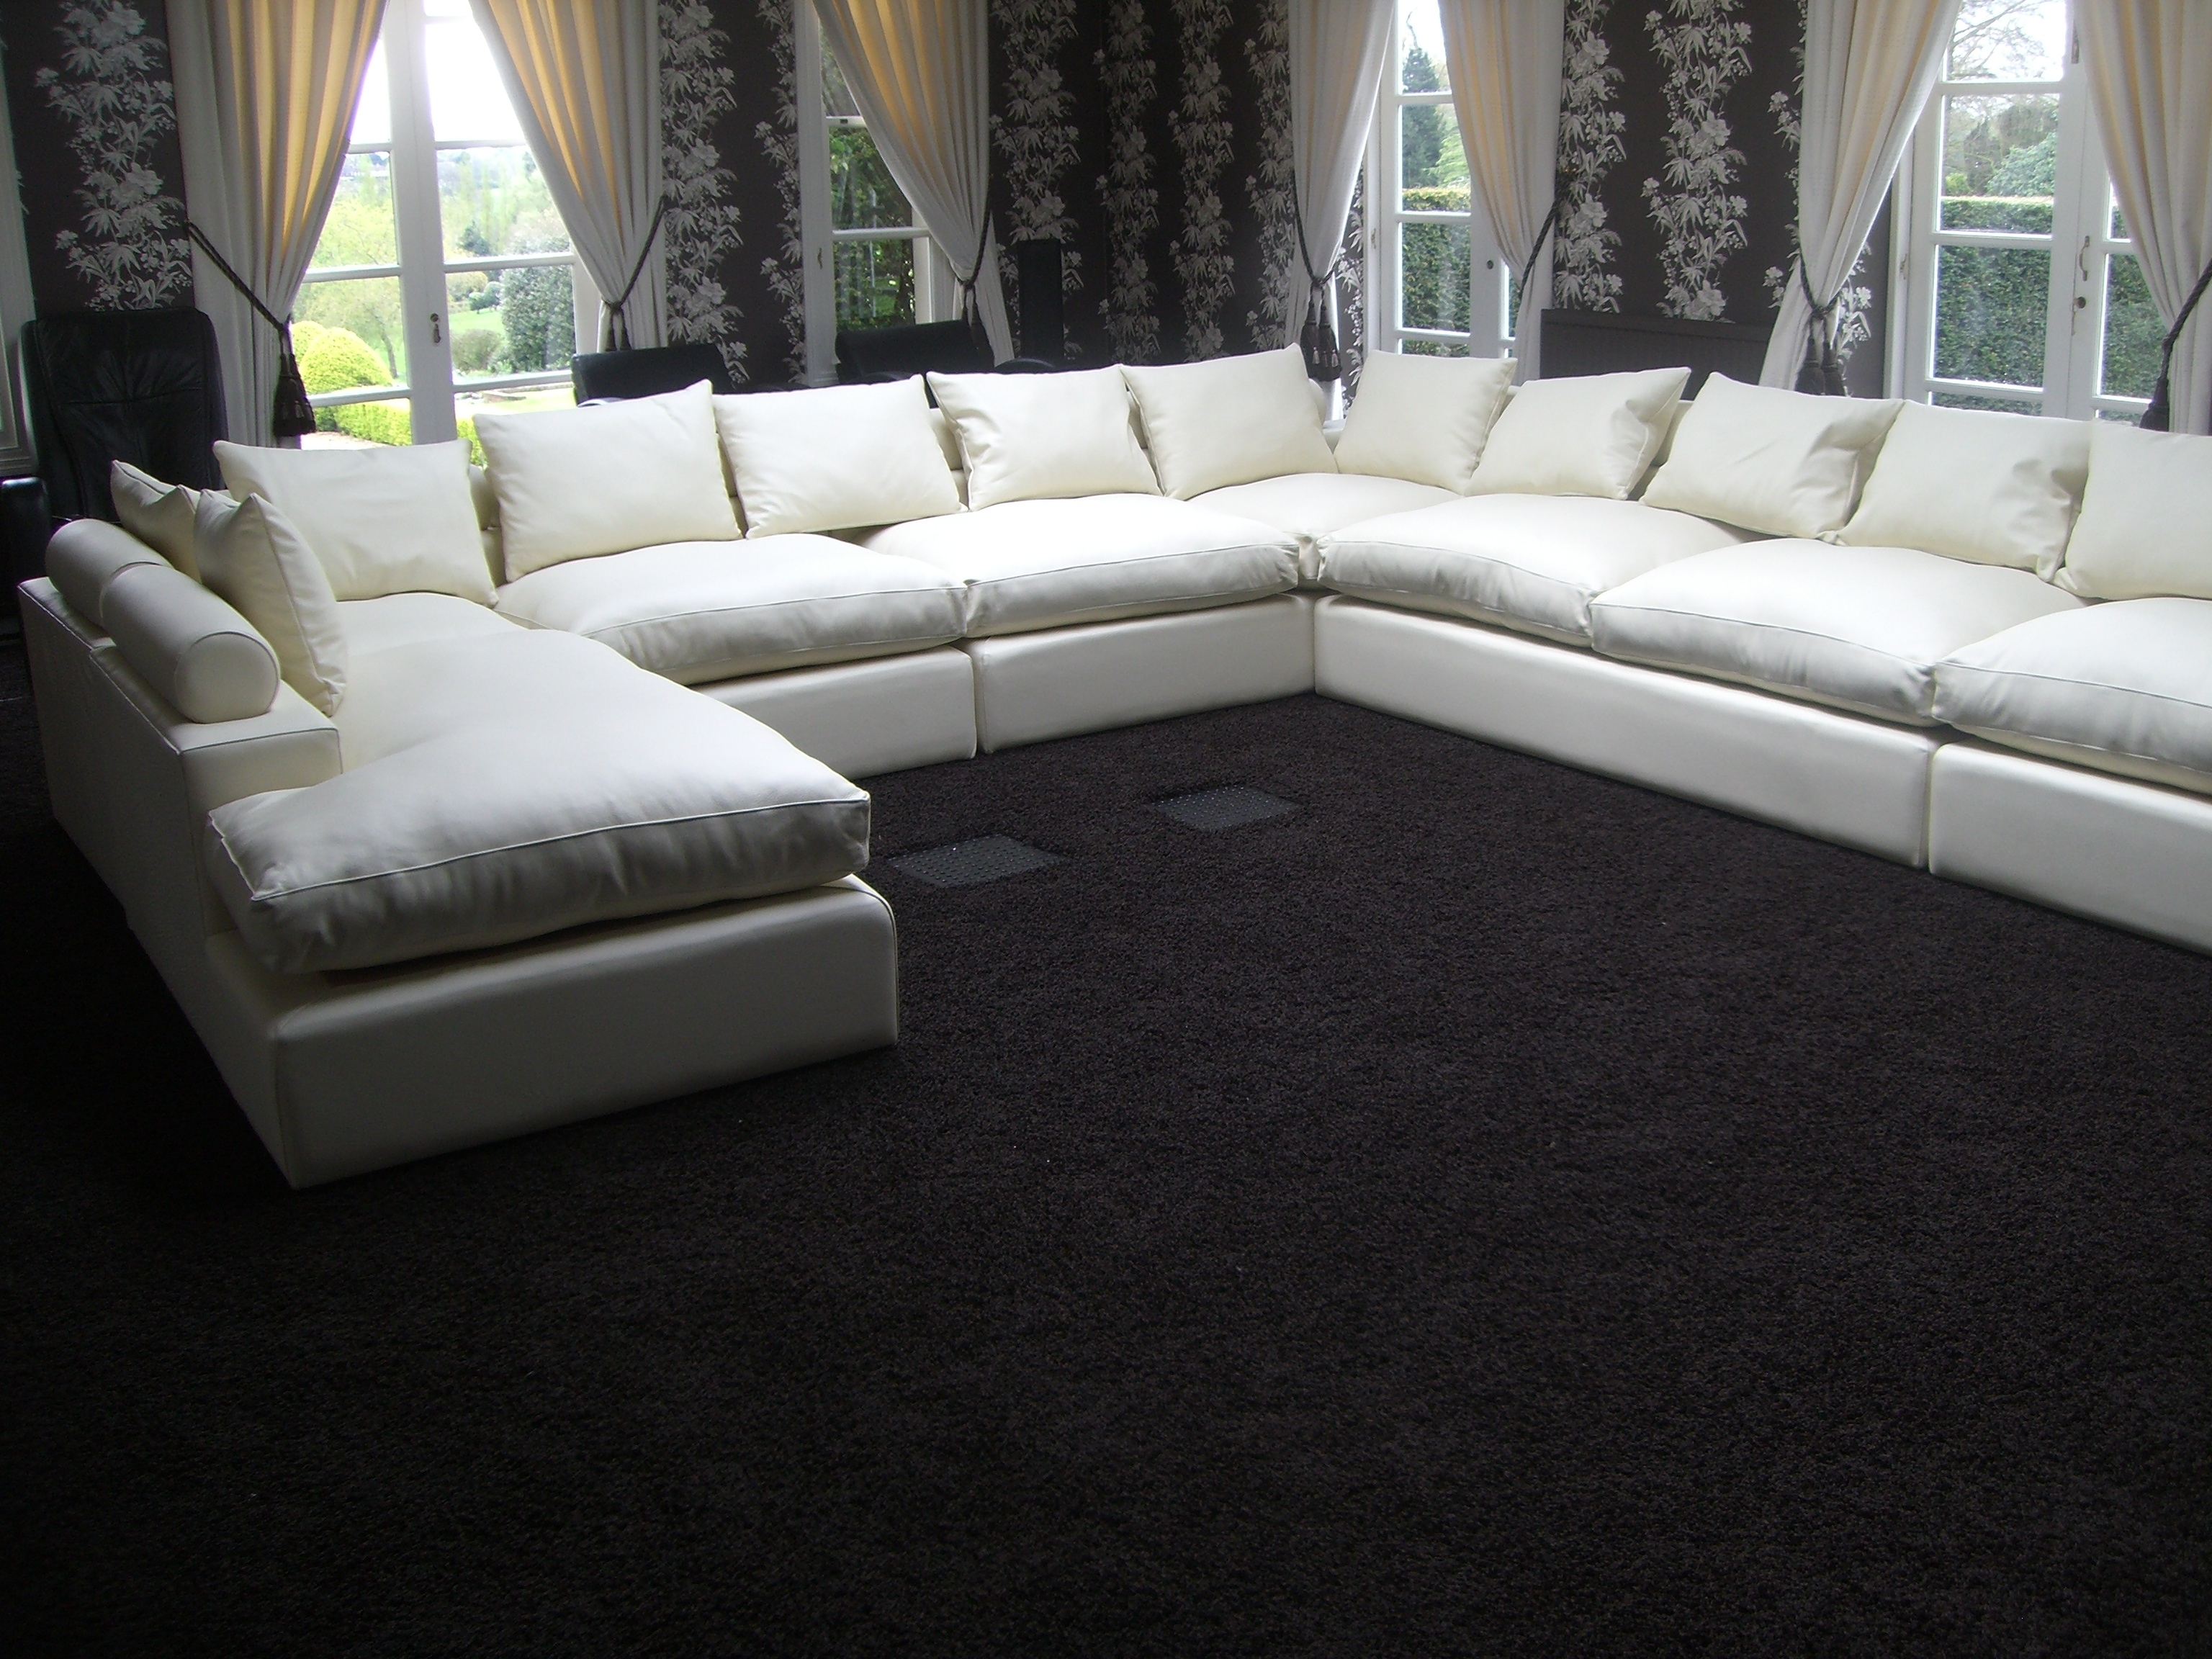 U Shaped Sectionals With Regard To 2018 Sofa : Endearing U Shaped Fabric Sofa U Shaped Fabric Sofa U (View 12 of 15)